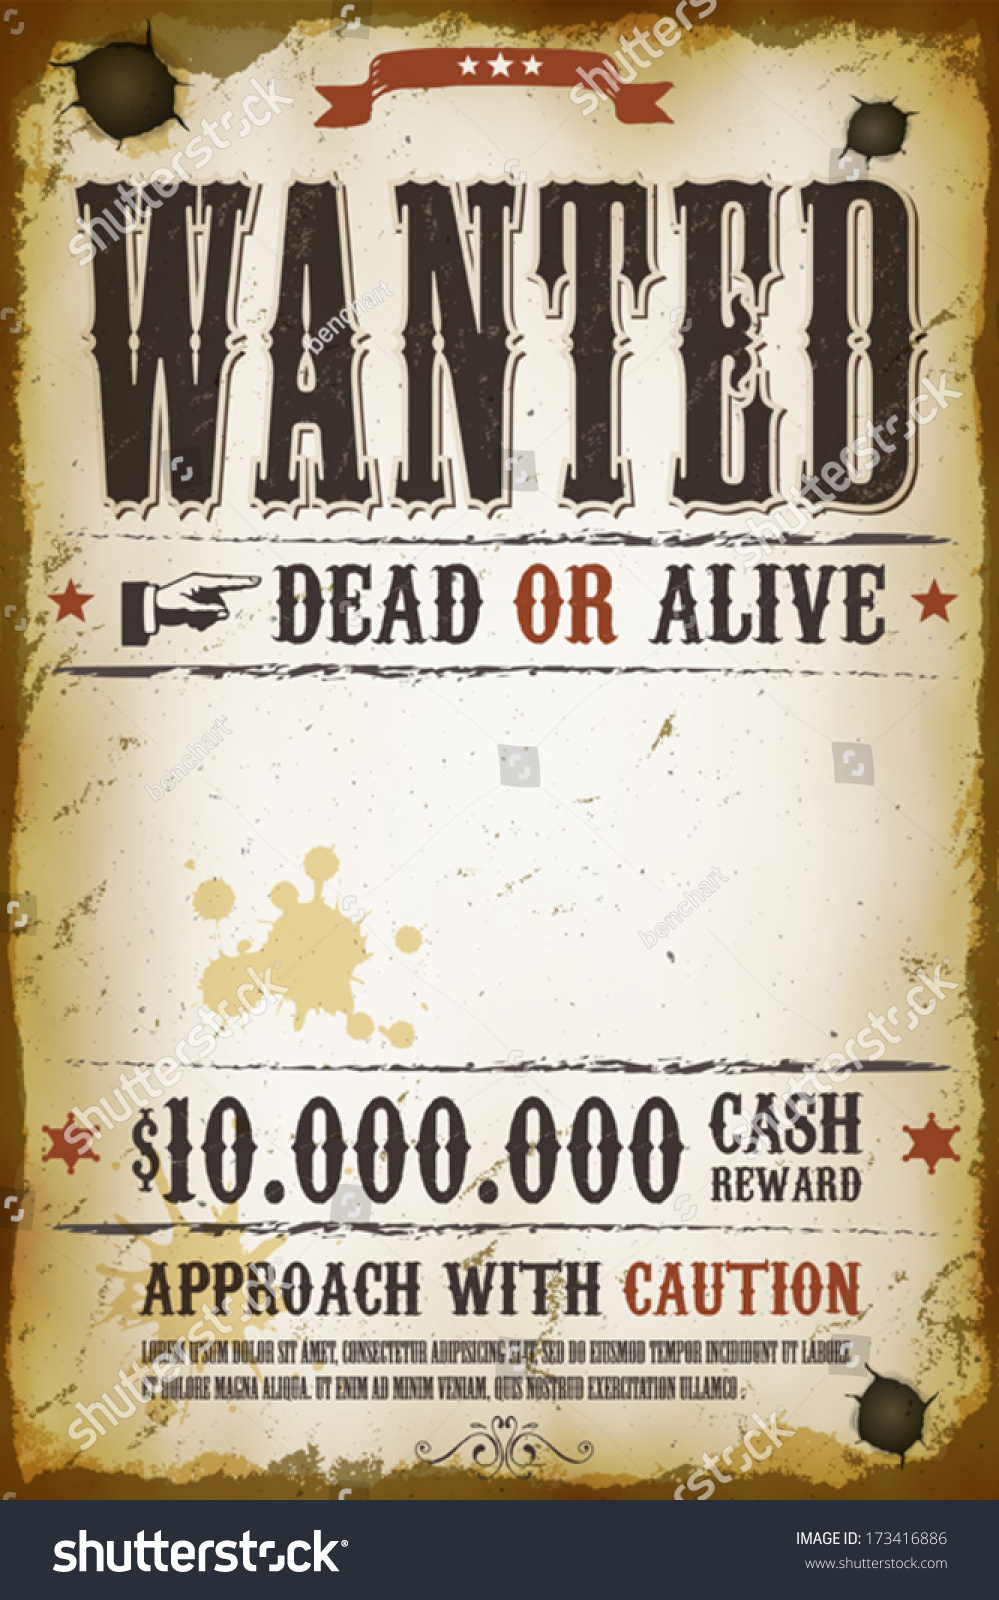 Wanted Vintage Western Poster Stock Vector 173416886 Shutterstock